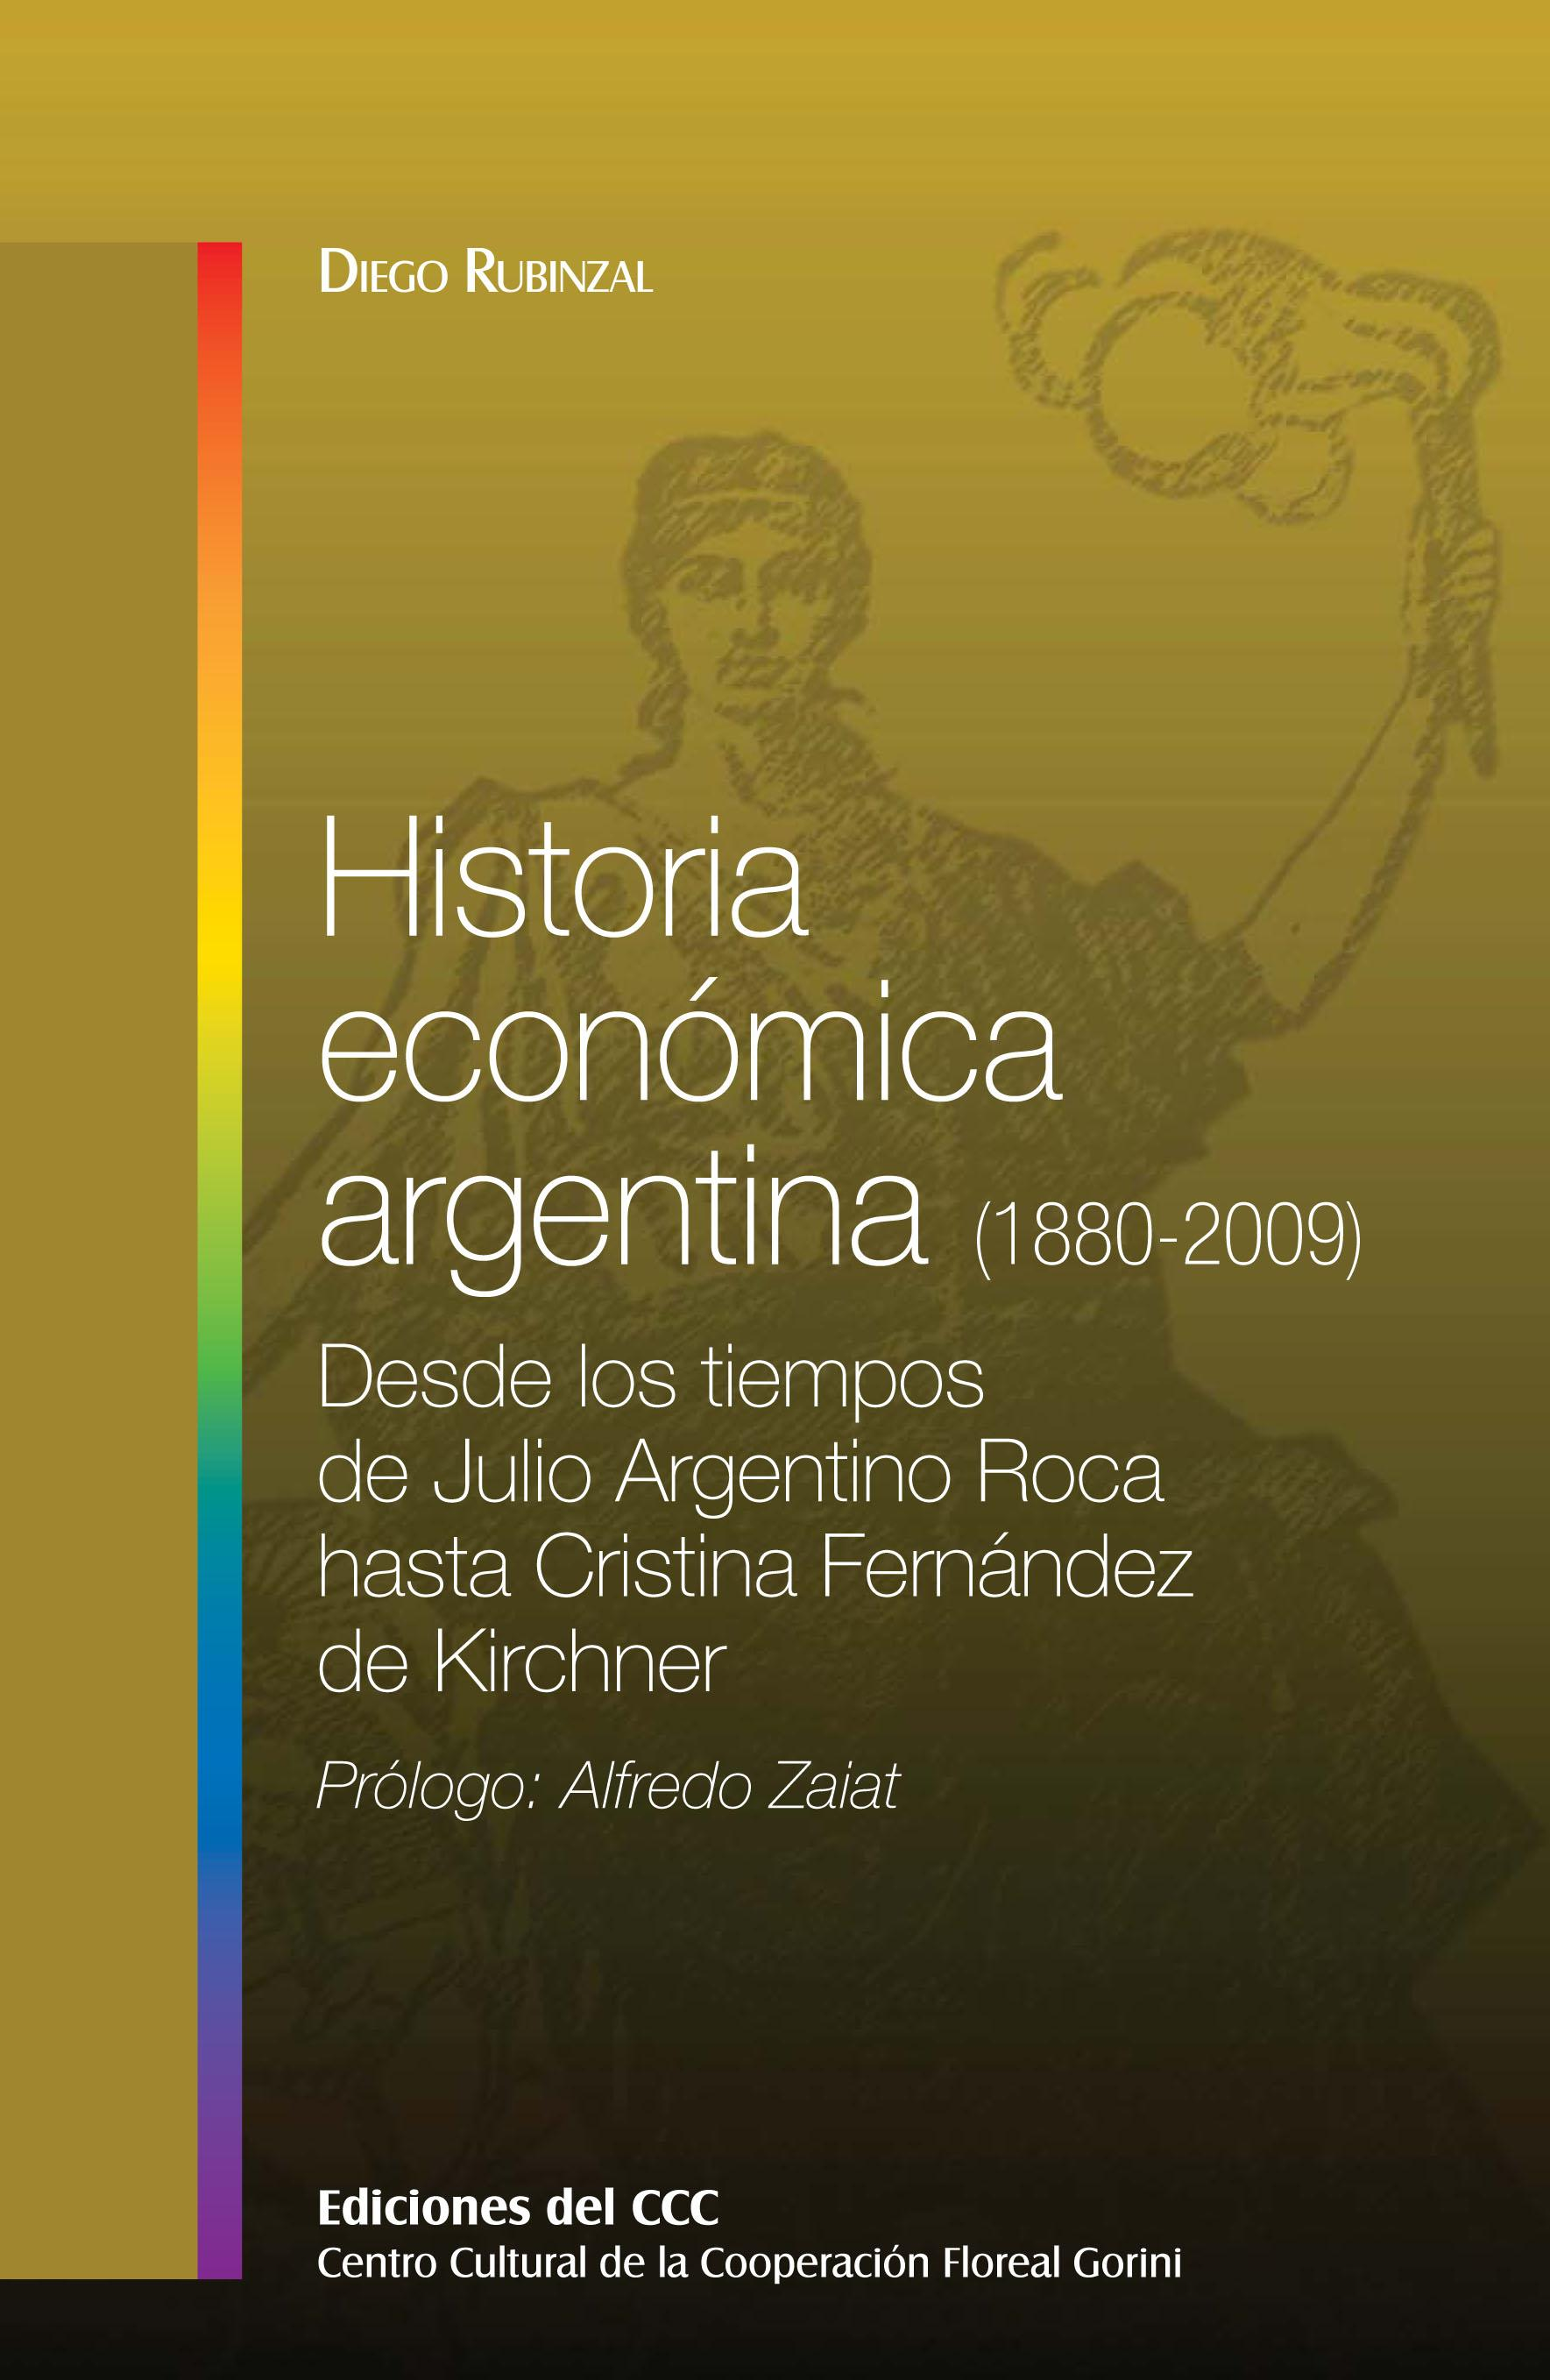 Historia econmica argentina (1880-2009)